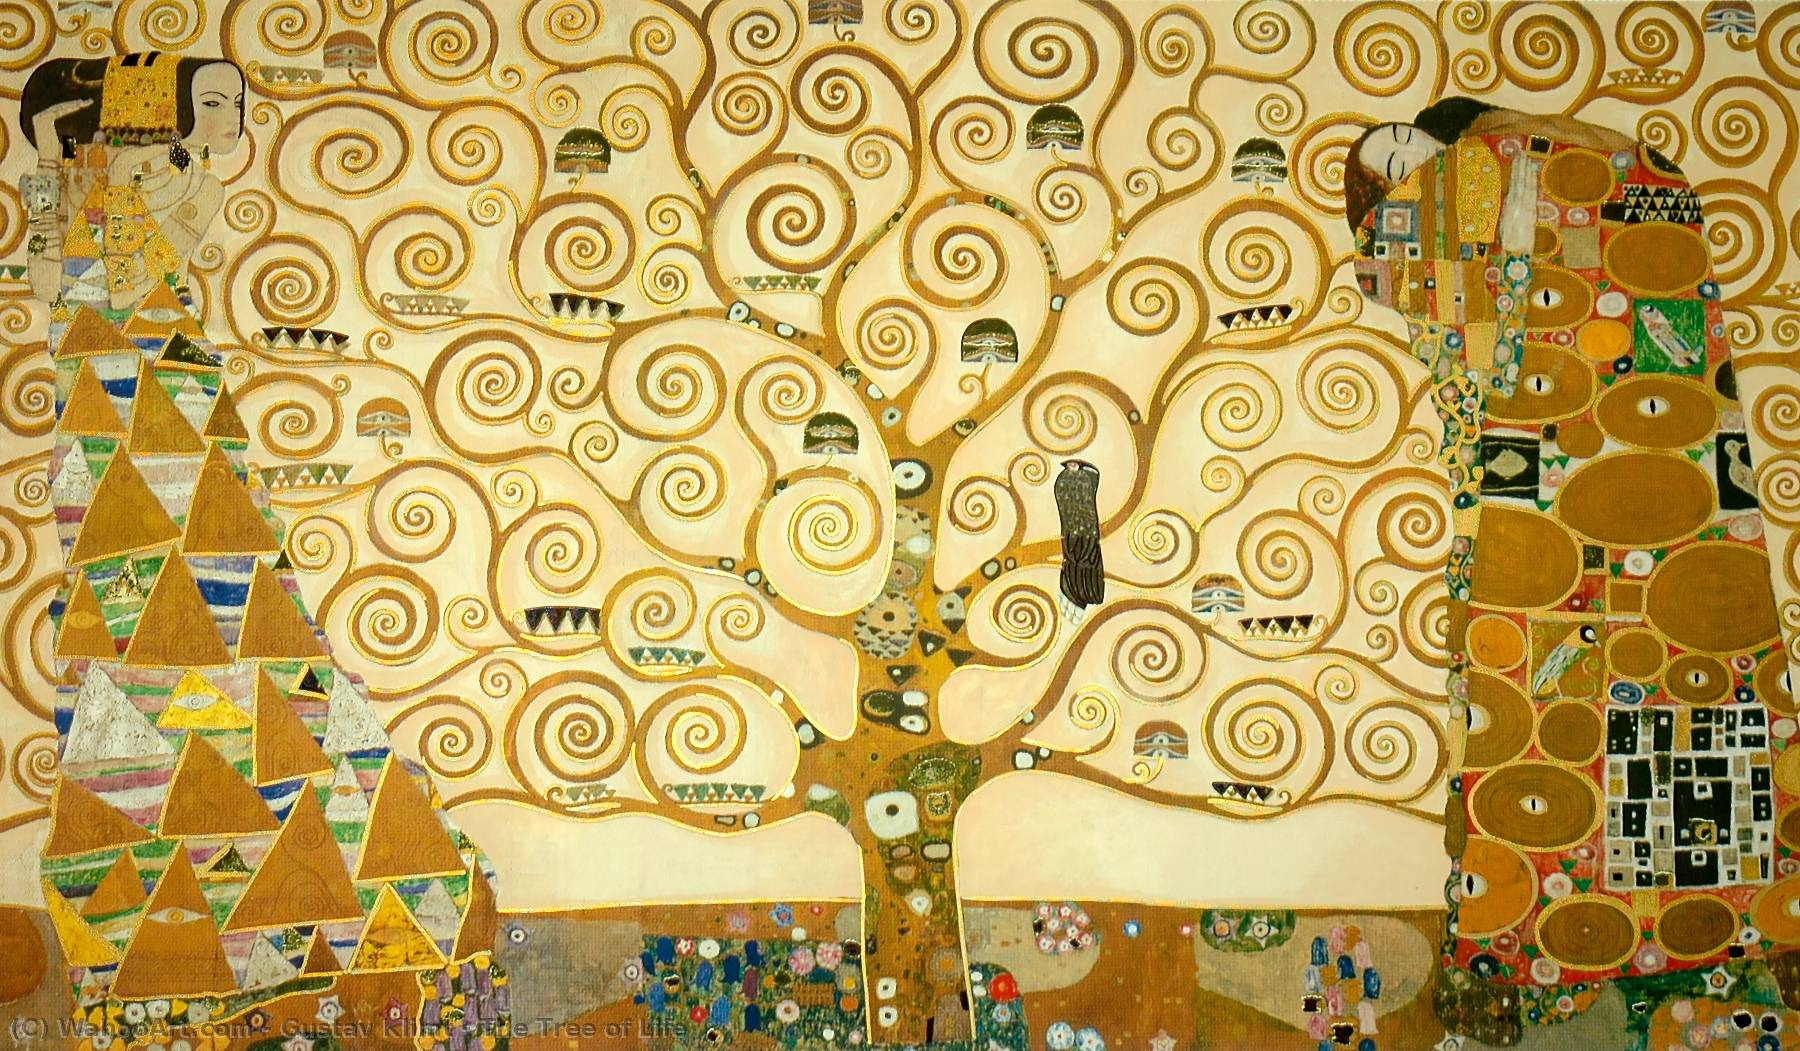 Order Paintings Reproductions | The Tree of Life by Gustav Klimt | Most-Famous-Paintings.com